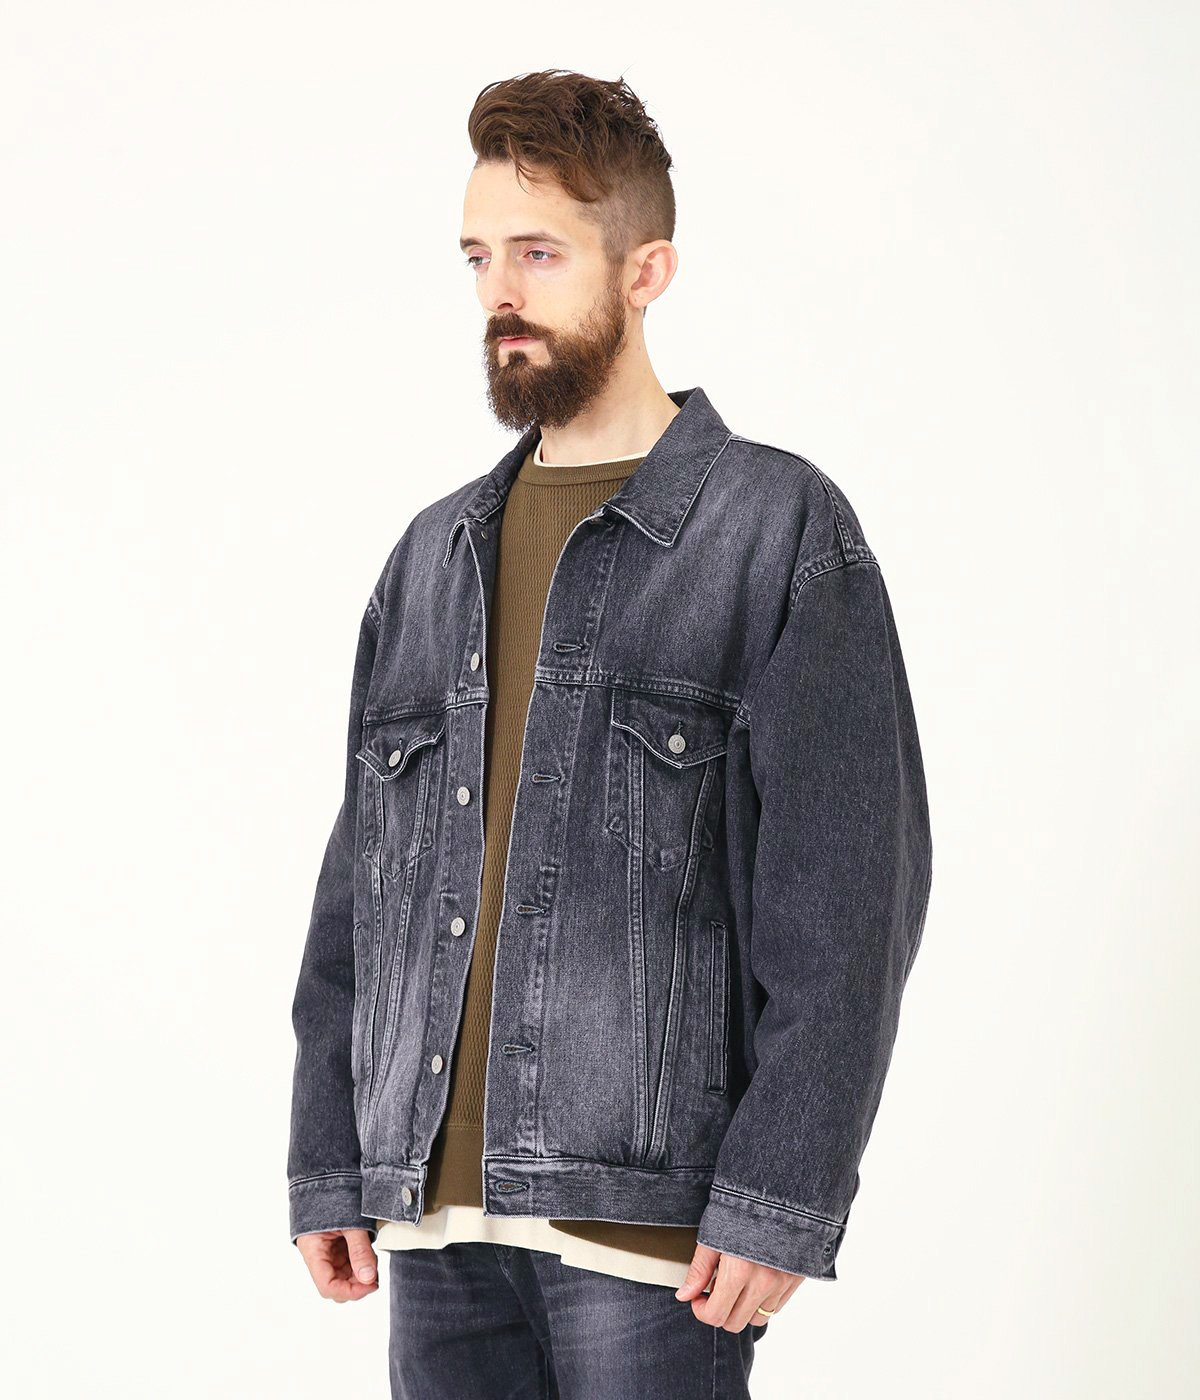 14oz. DENIM JACKET HARD WASHED